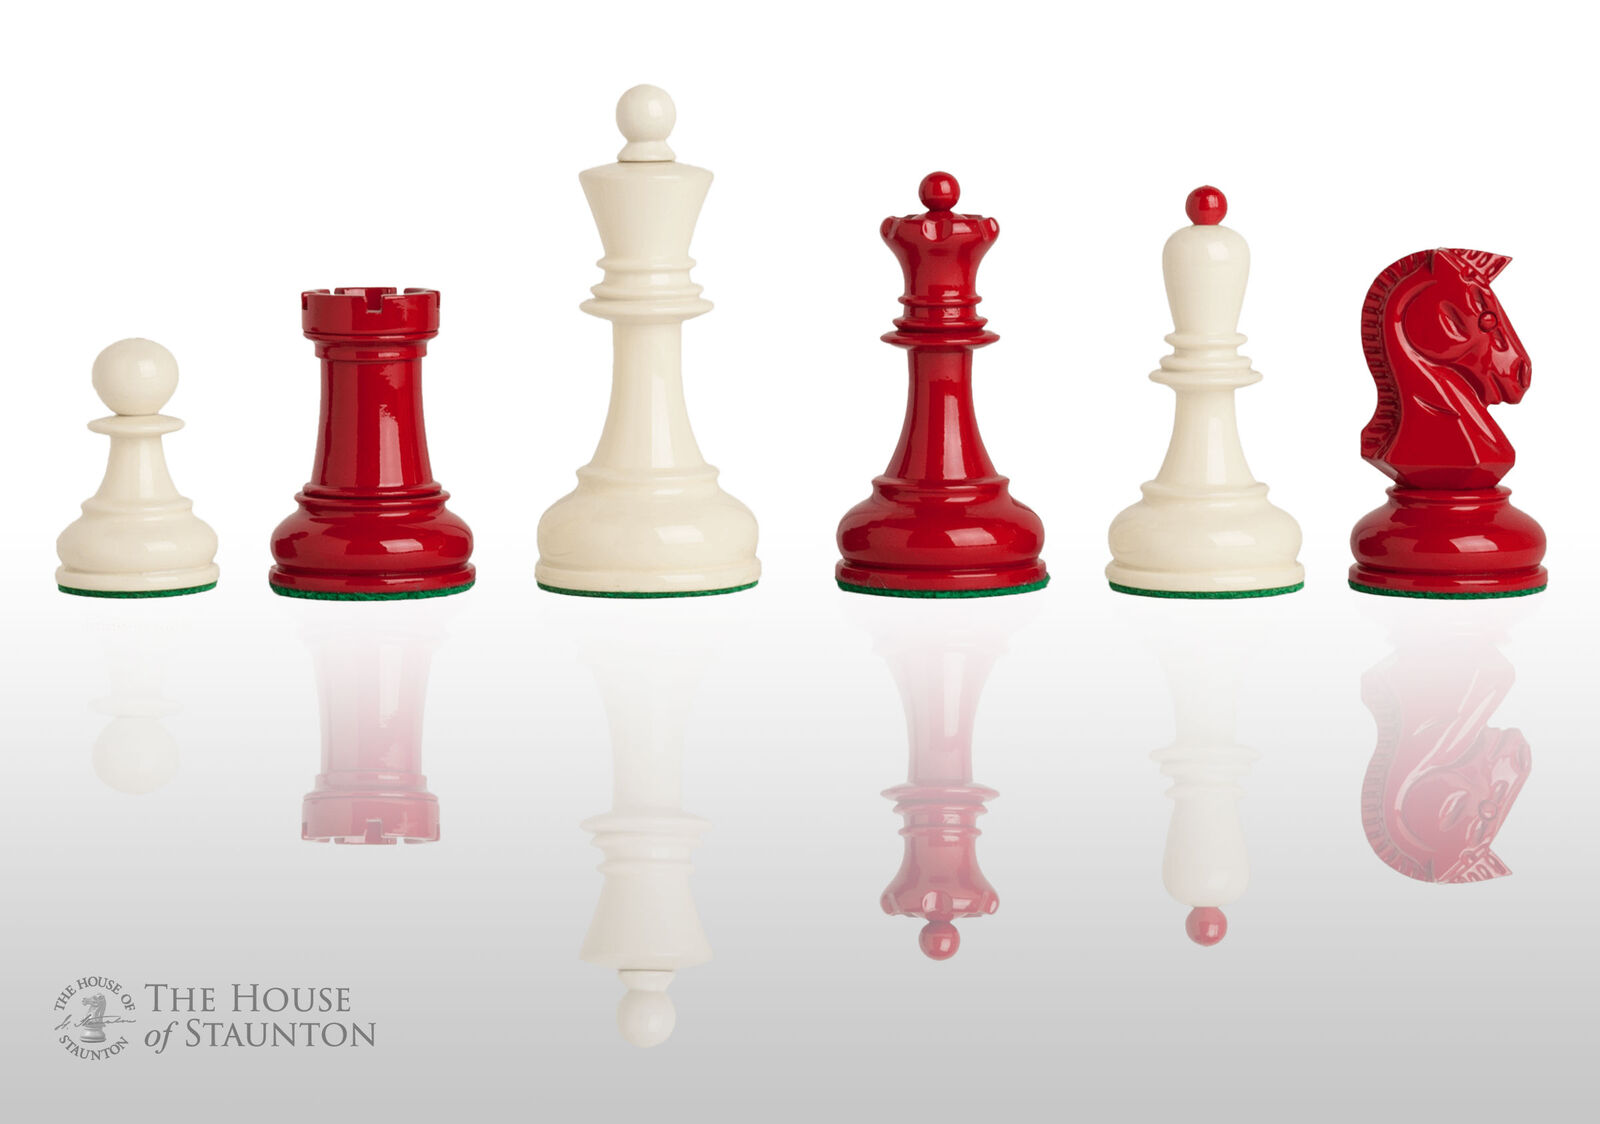 USCF Sales The Dubrovnik Chess Set - Pieces Only - 3.75  King - rosso and bianca La